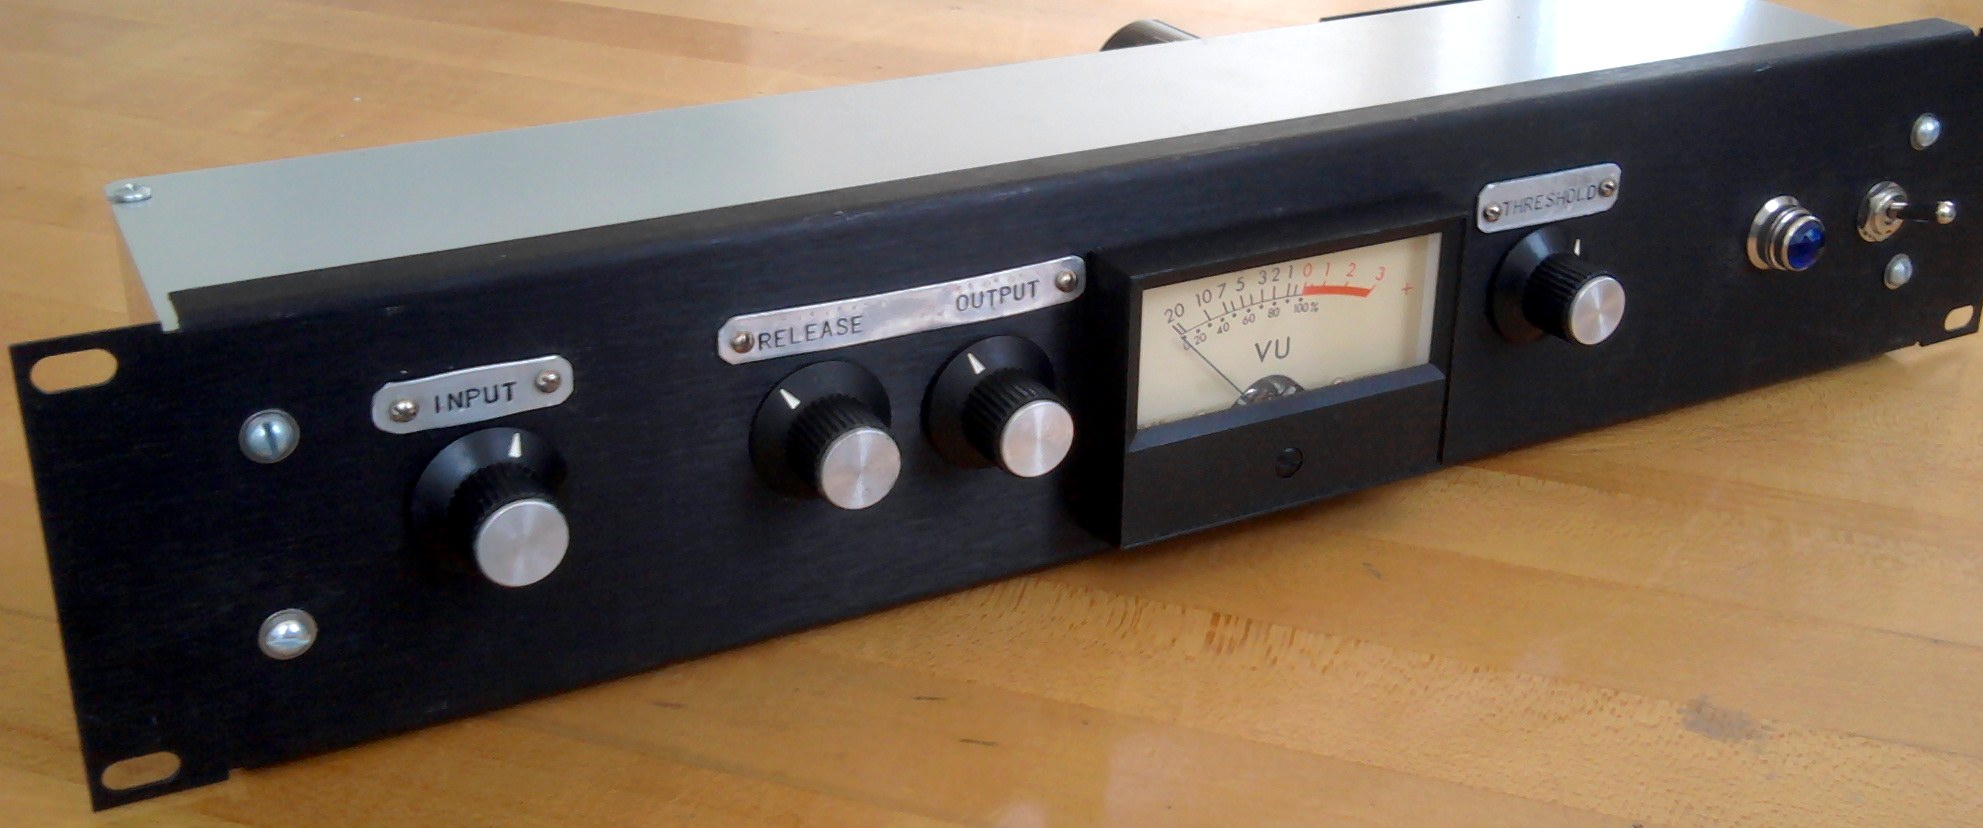 Altec 436 Compressor: Taming the output level: part 2 | Preservation